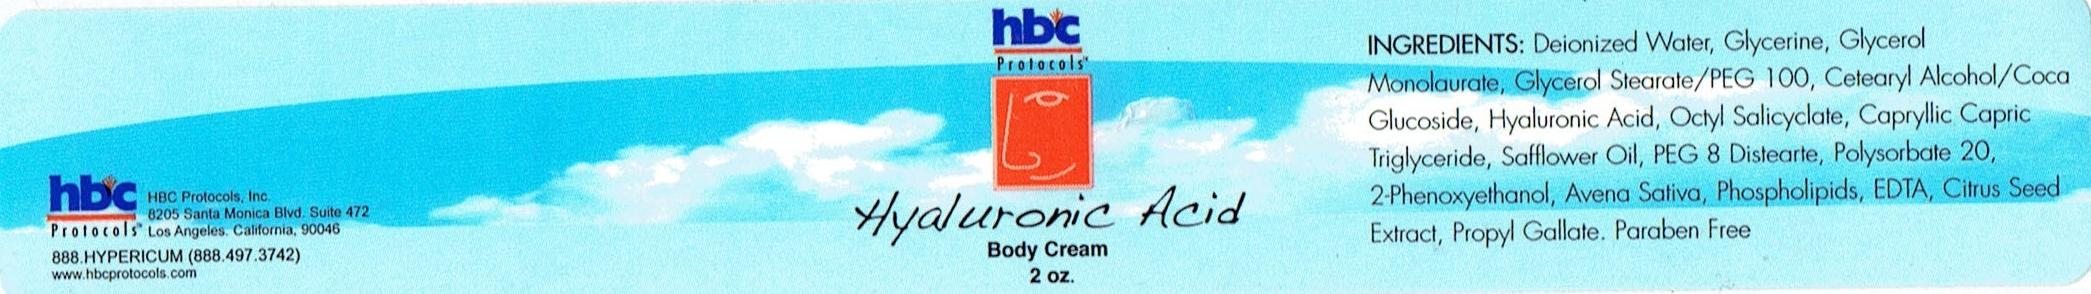 Hyaluronic Transdermal Cream - 2oz Bottle